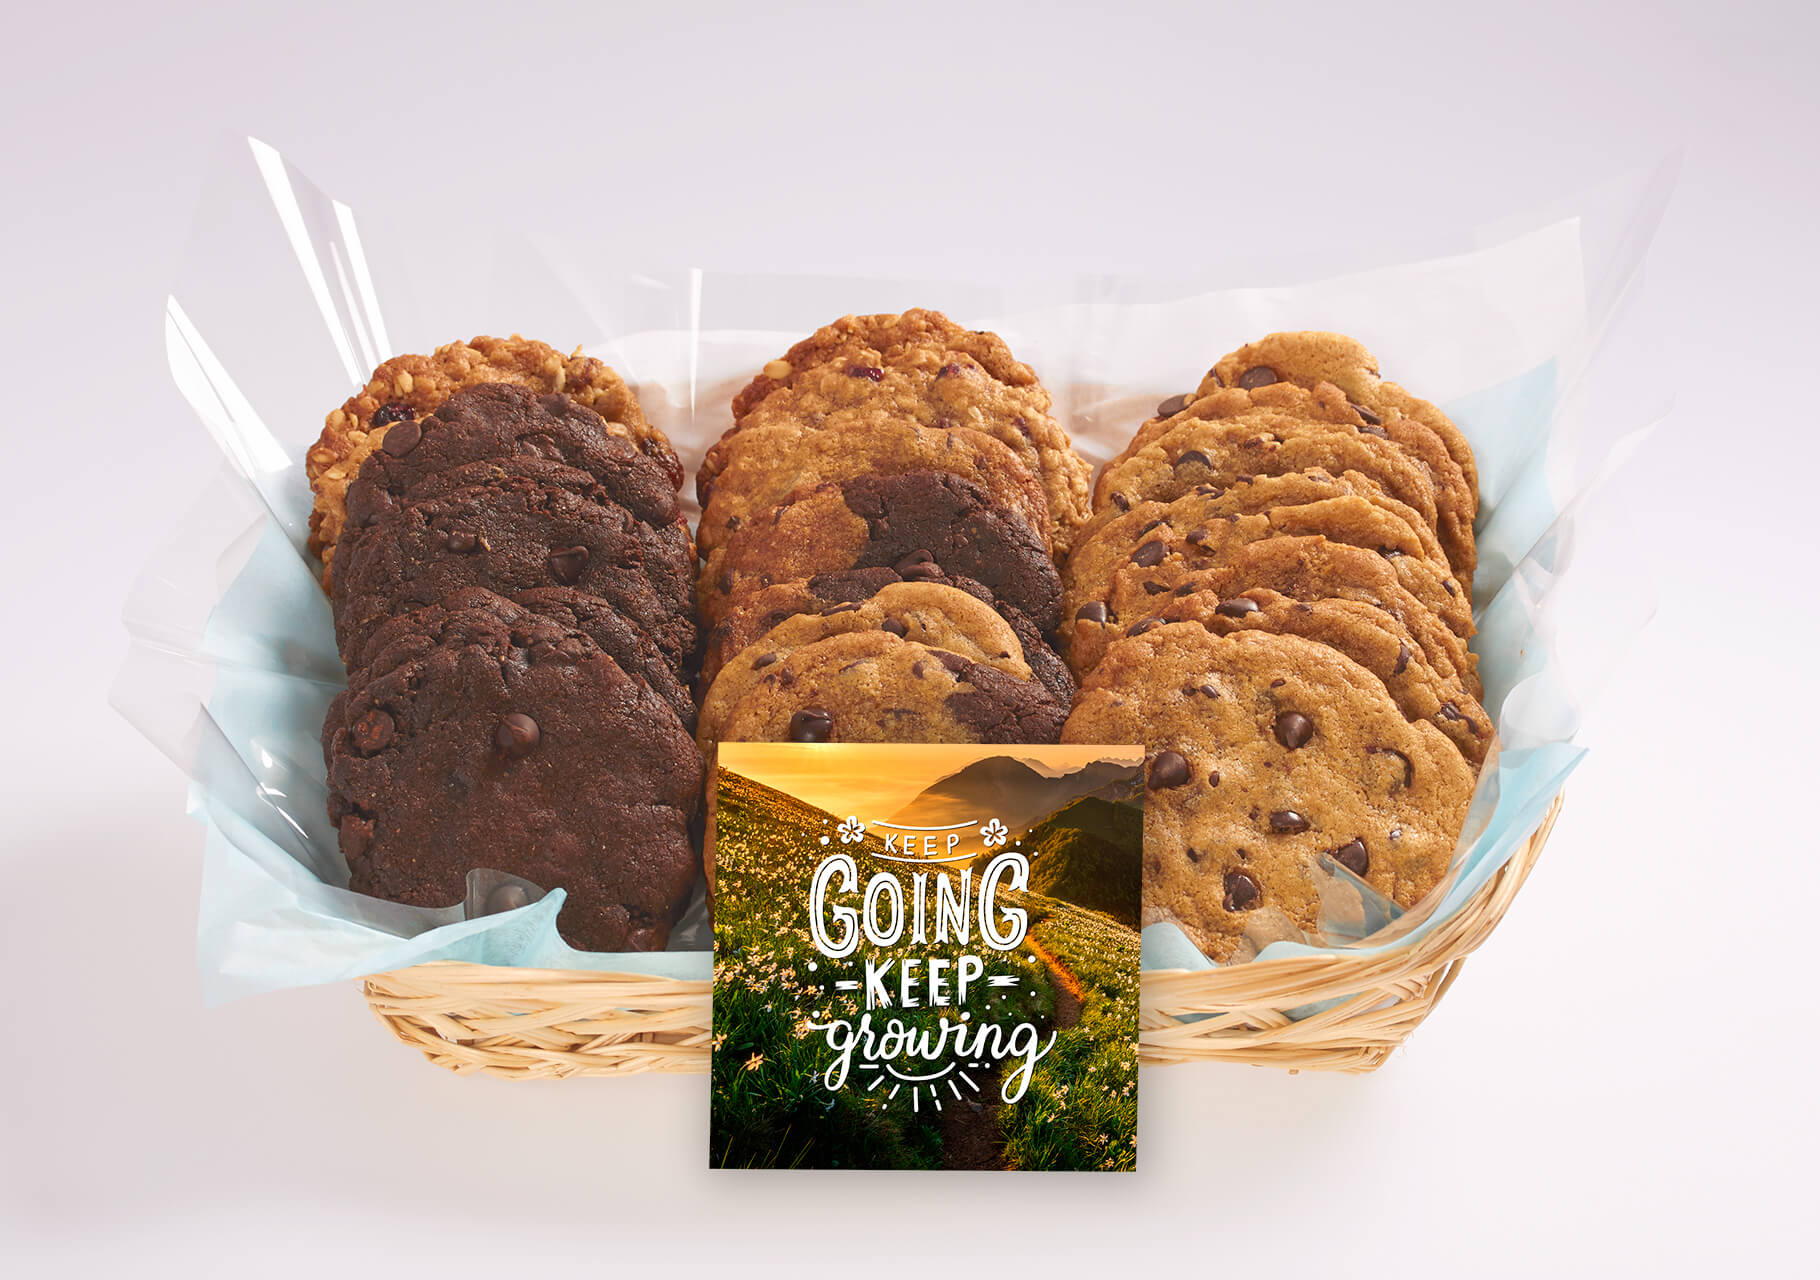 Keep Going & Keep Growing Inspirational Gift Baskets